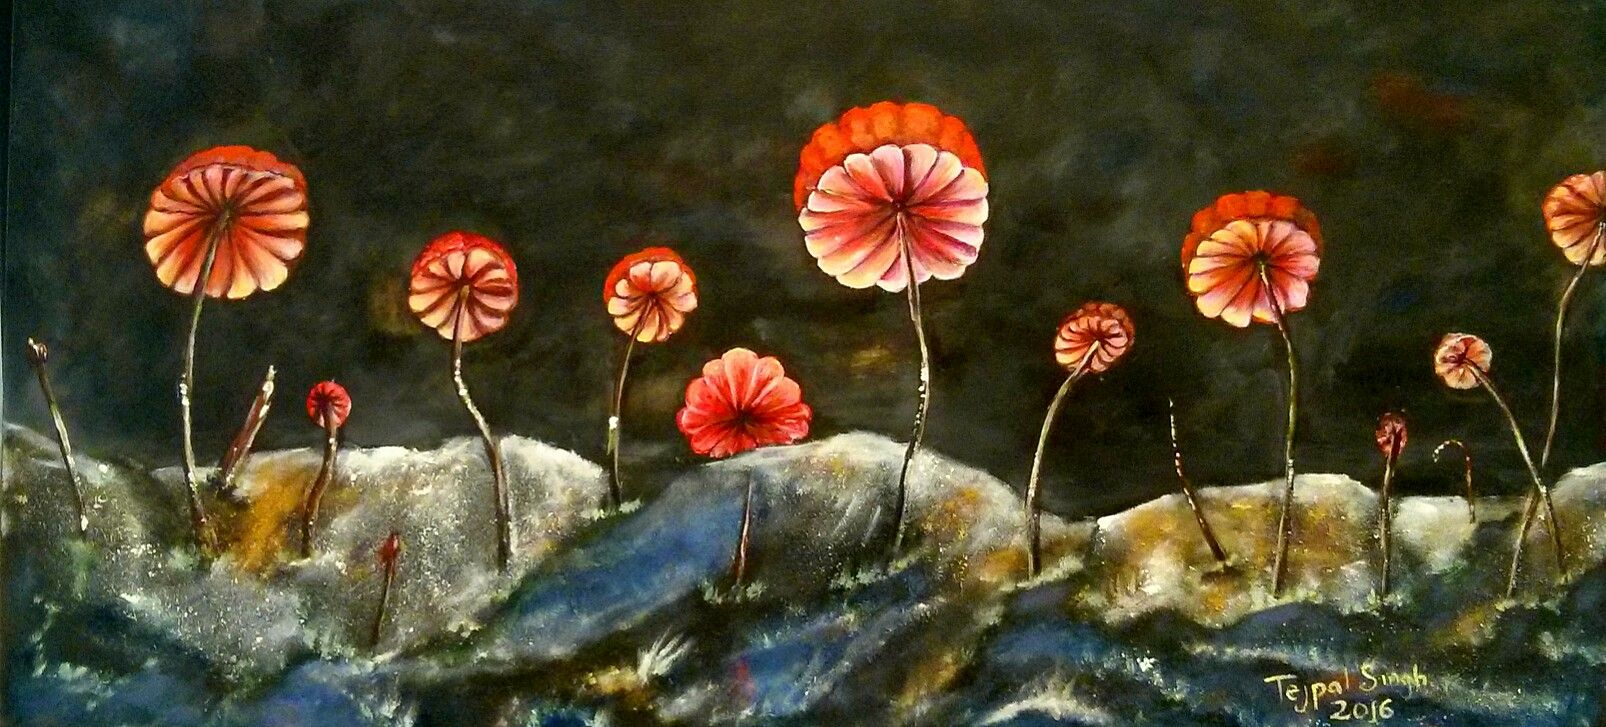 Pin on Nature Paintings by Tejpal Mann TSM Gallery Delta